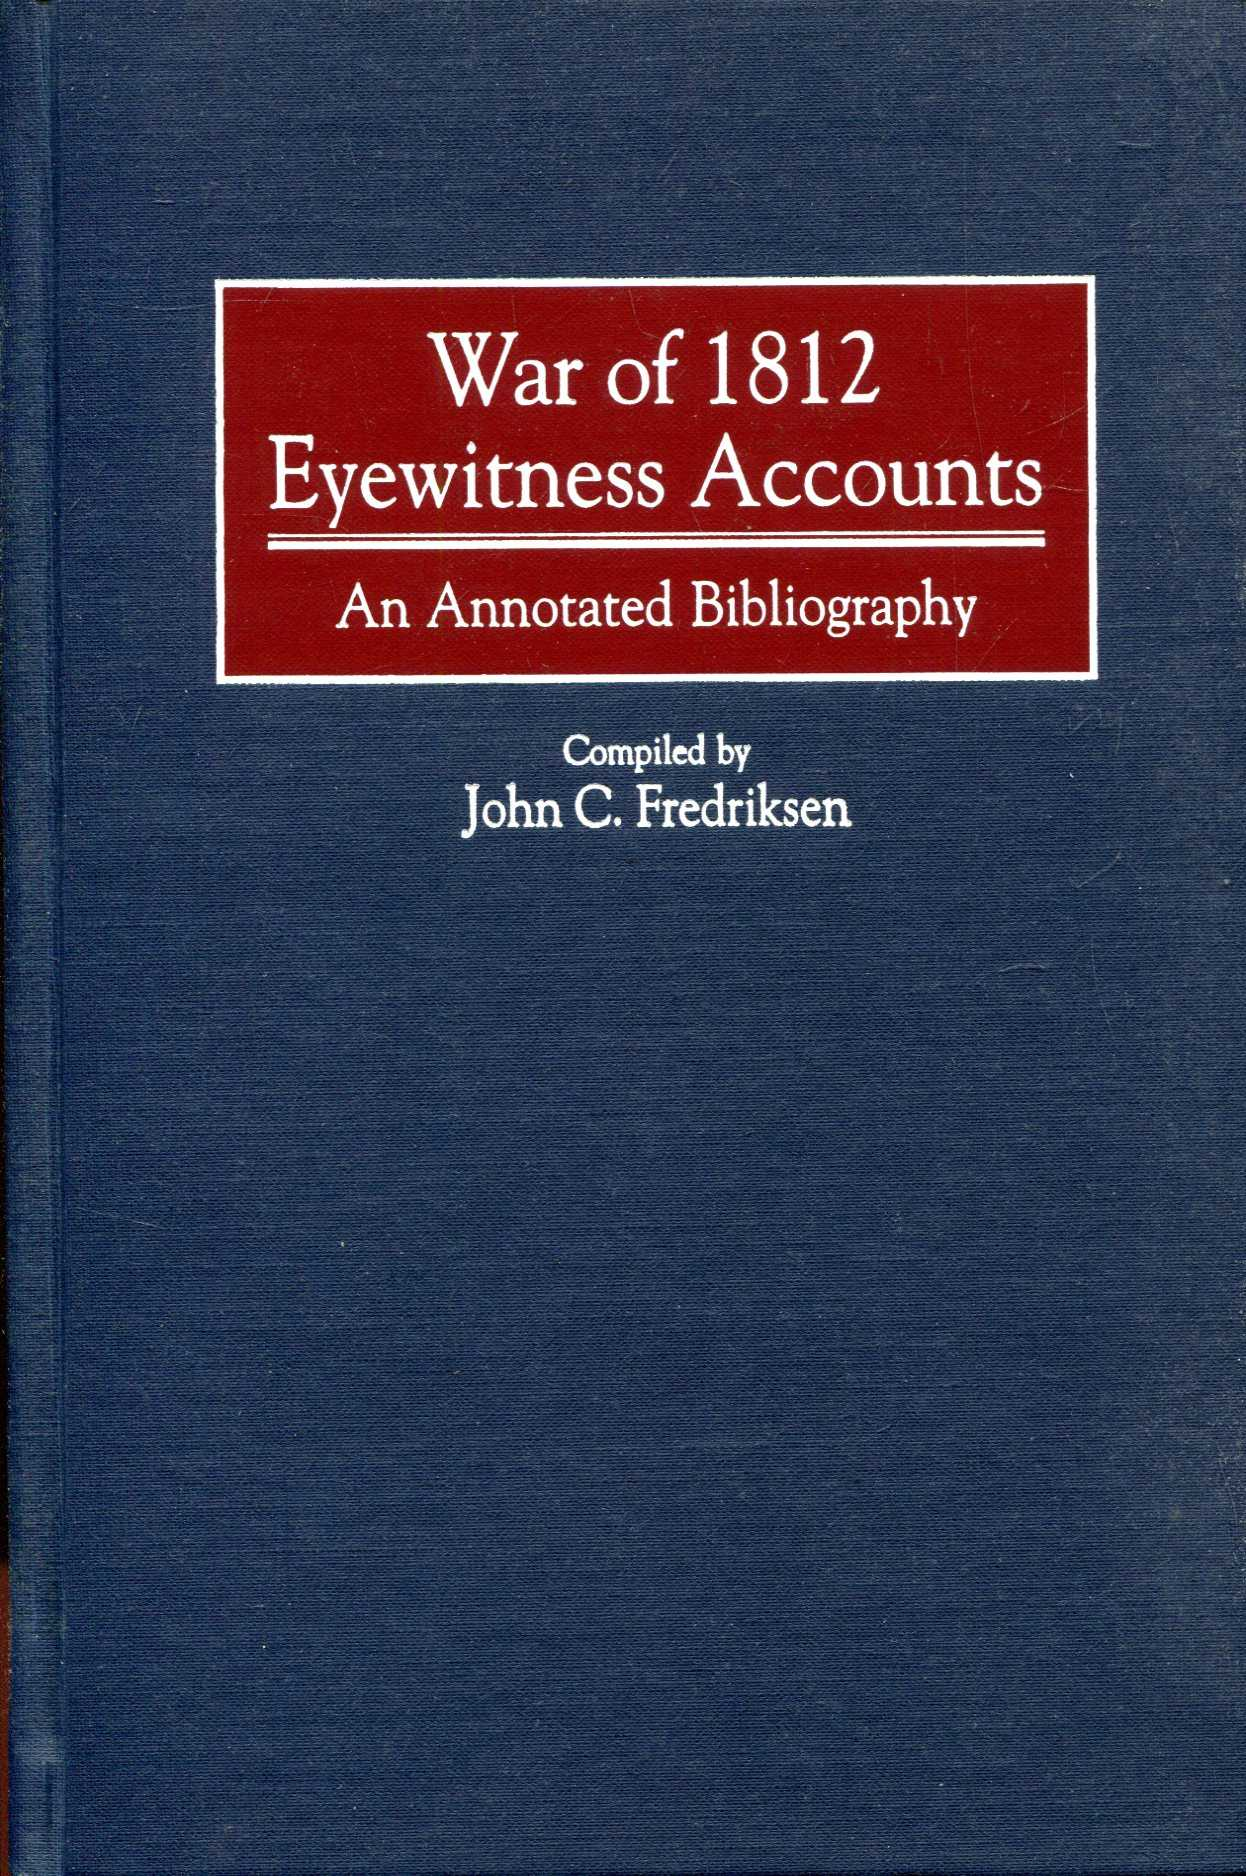 Image for The War of 1812 Eyewitness Accounts : An Annotated Bibliography